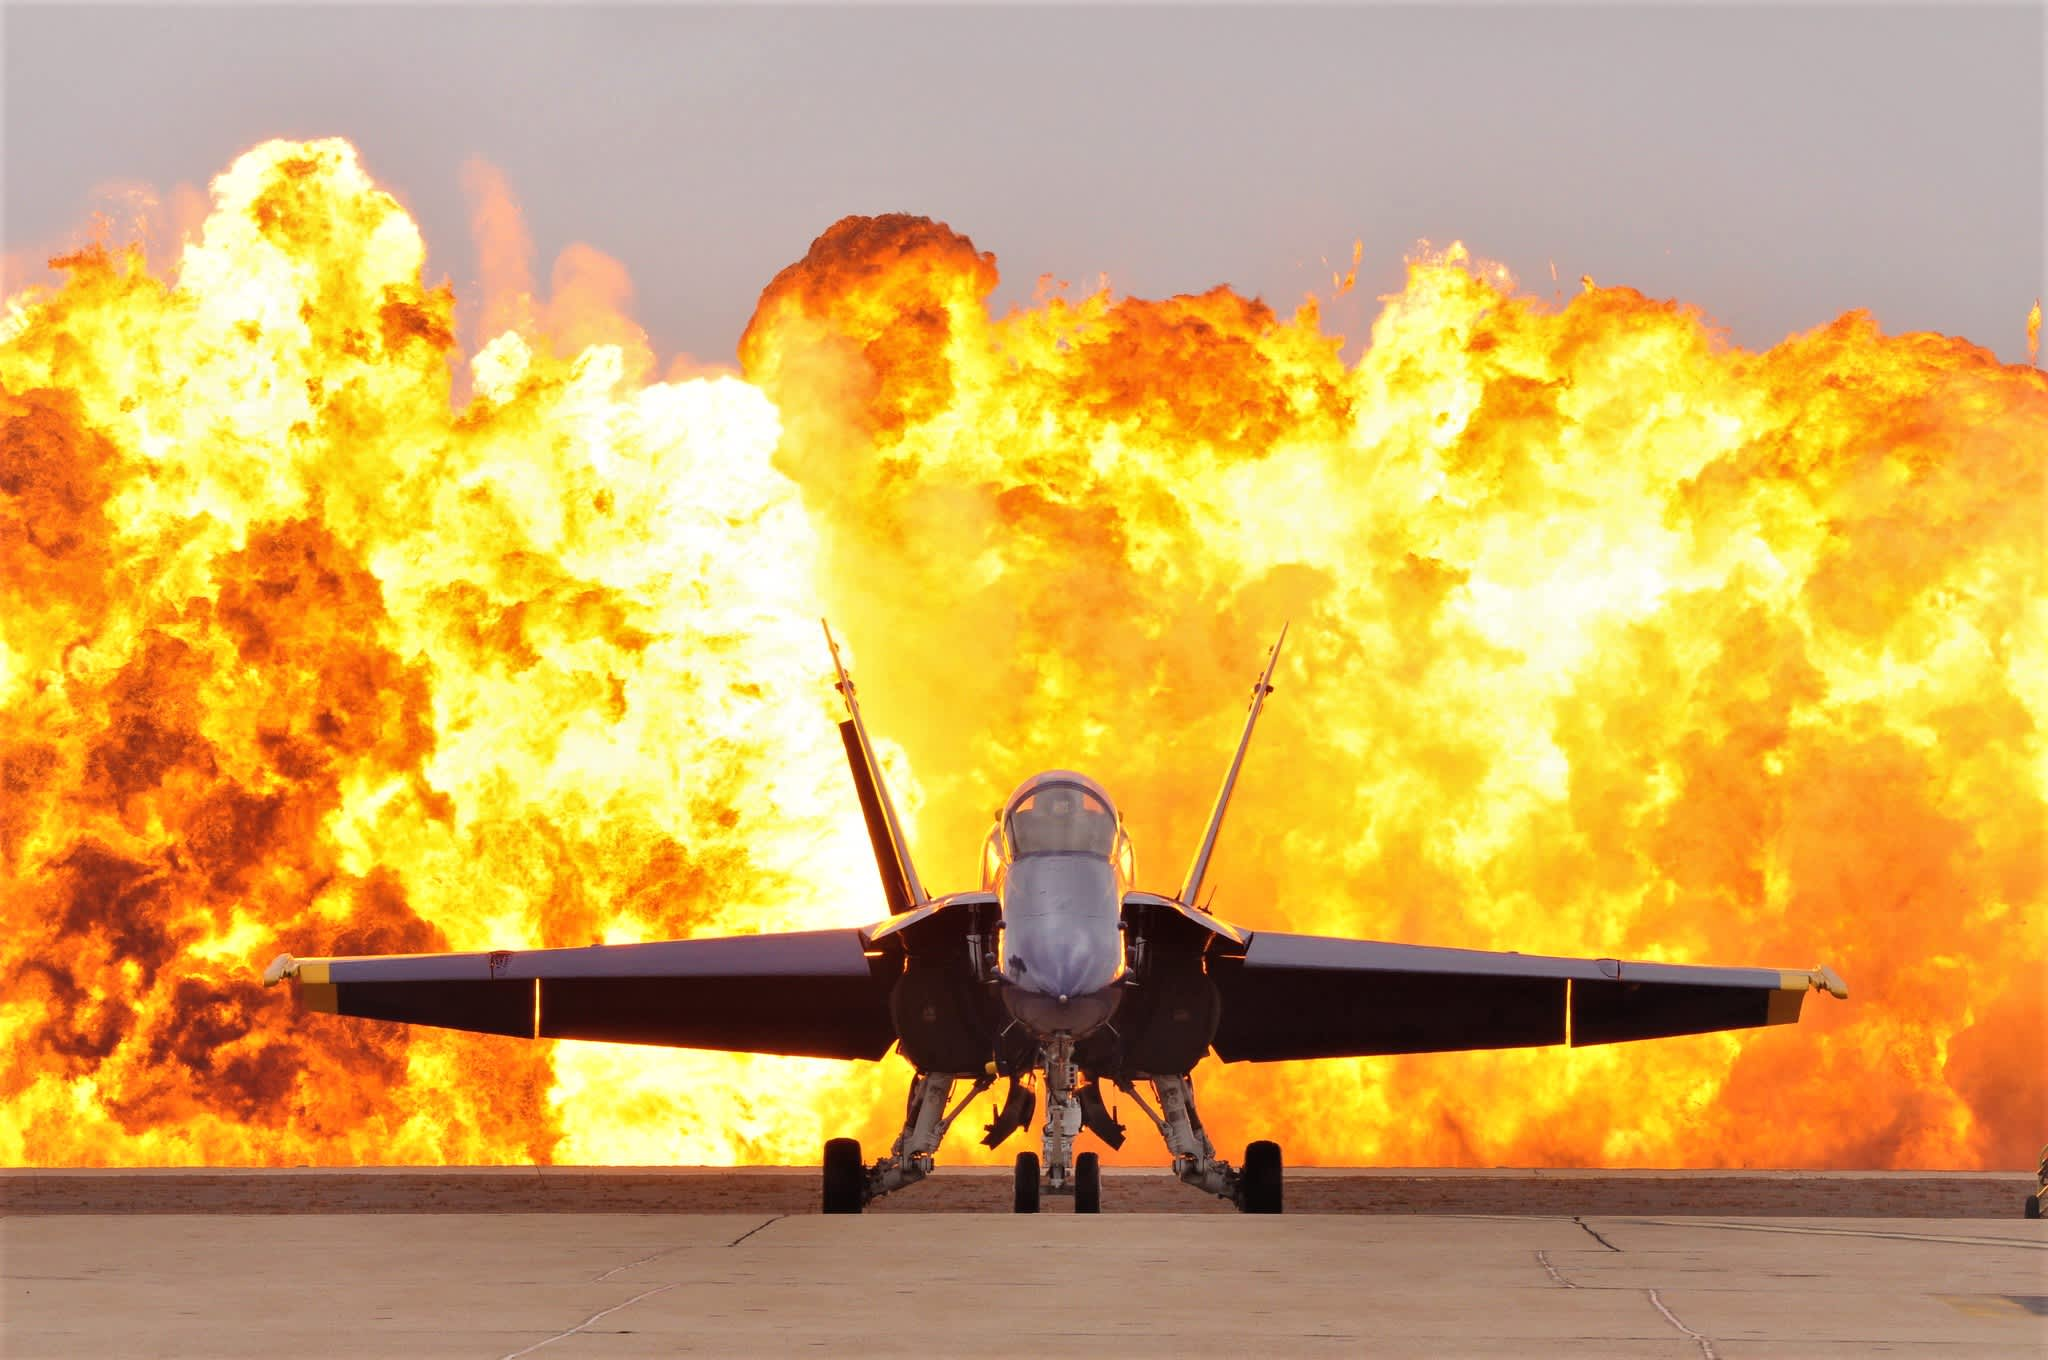 Here's the firepower the Pentagon is asking for in its $705 billion budget